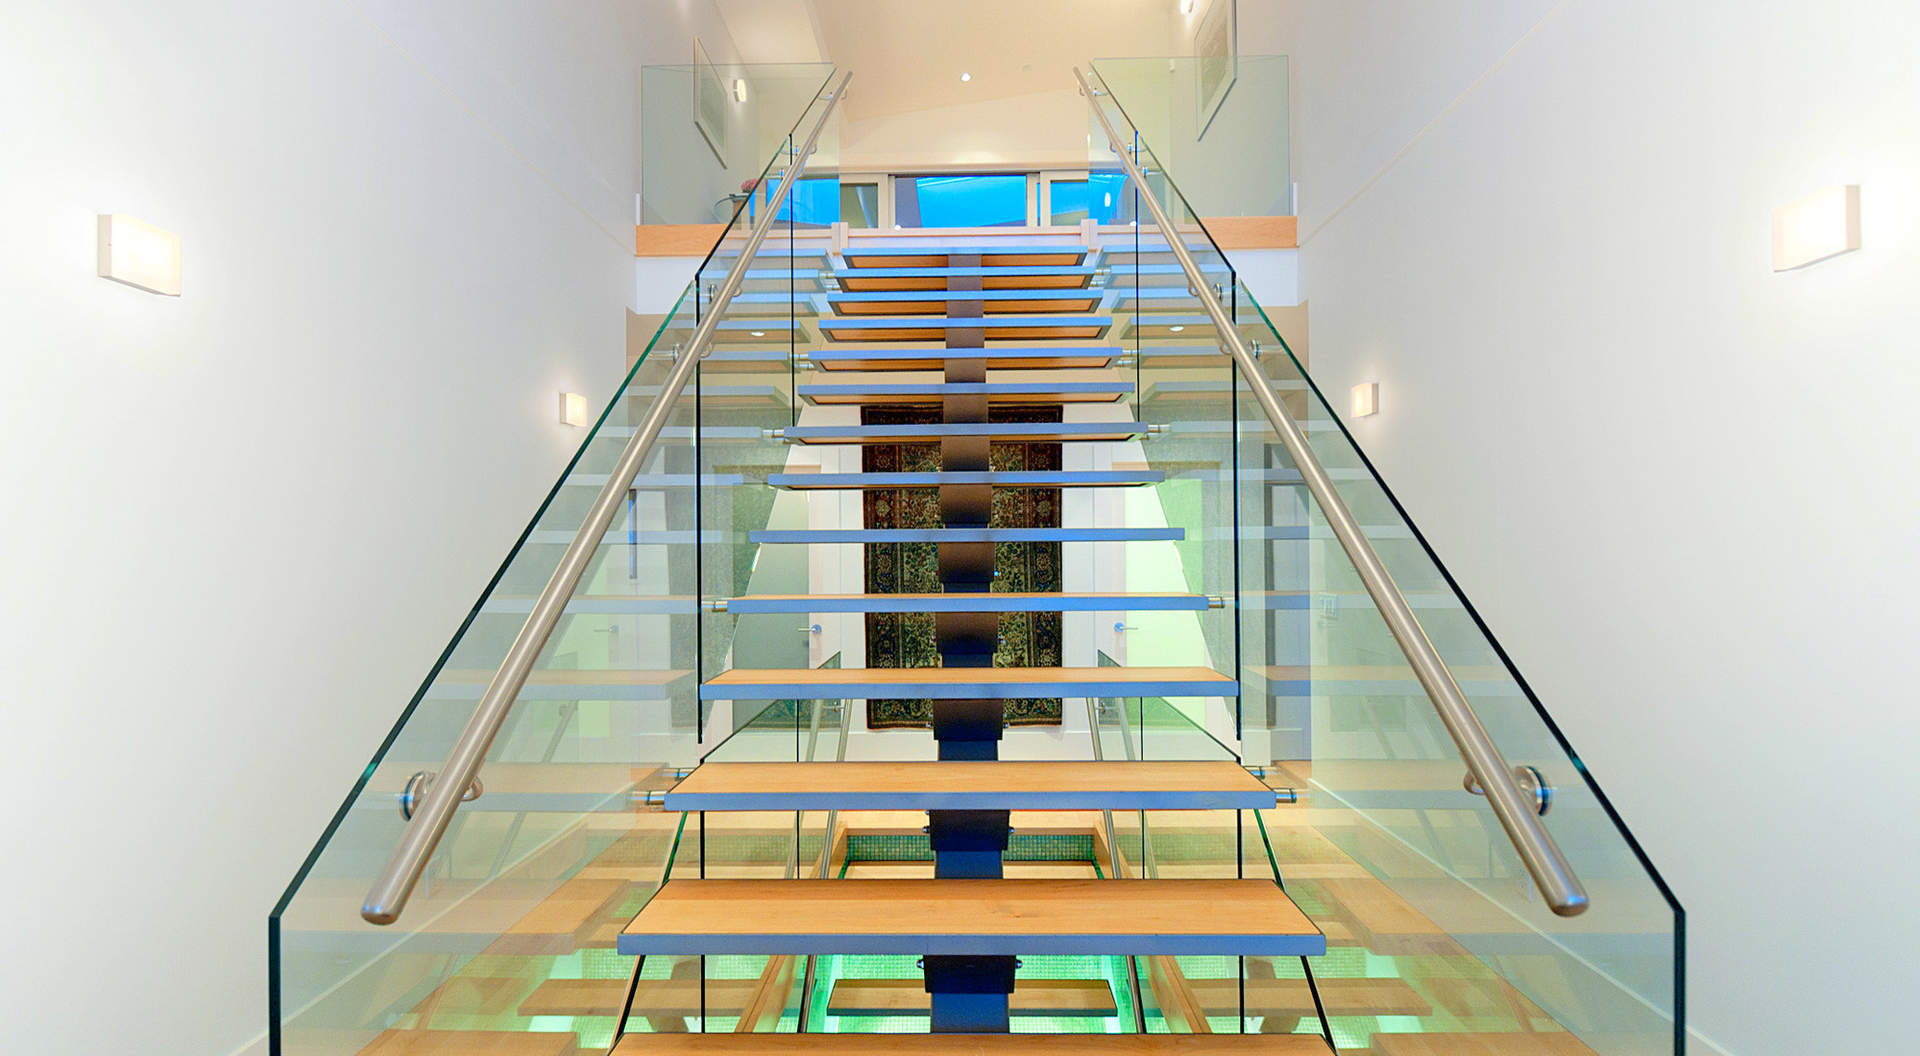 Smashing Suspended Staircase Made of Glass & Steel